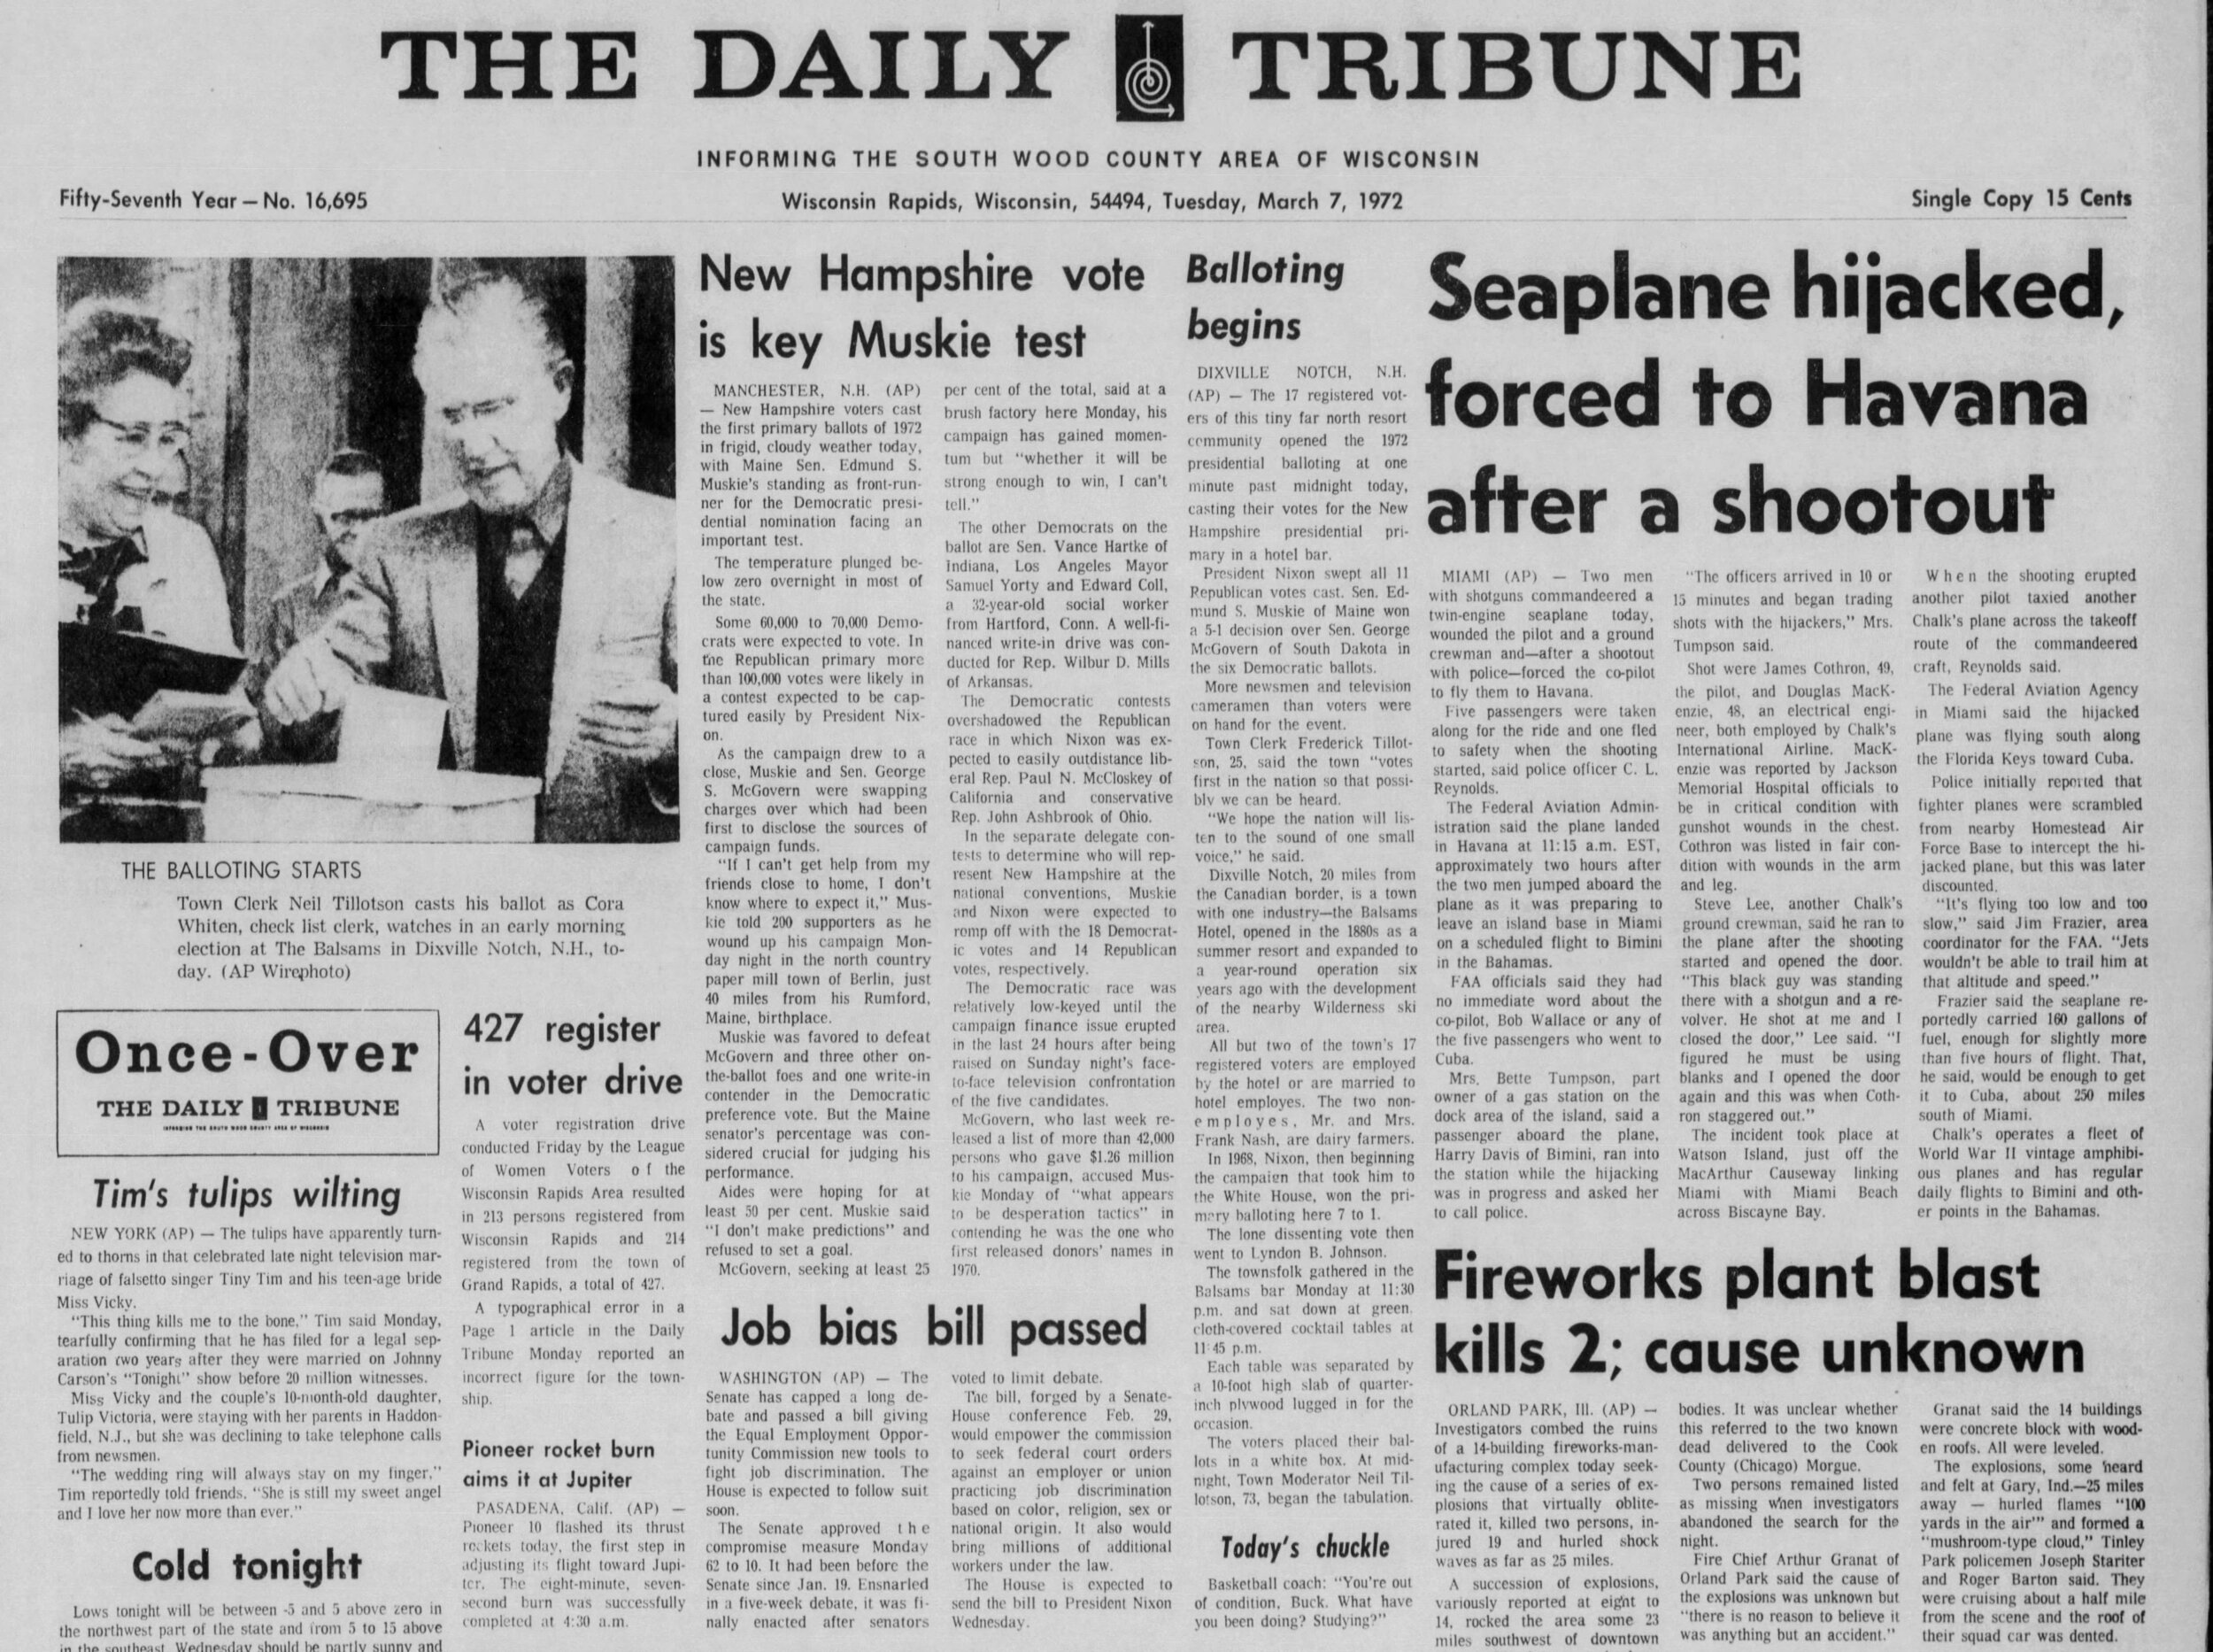 The_Daily_Tribune_Tue__Mar_7__1972_.jpg